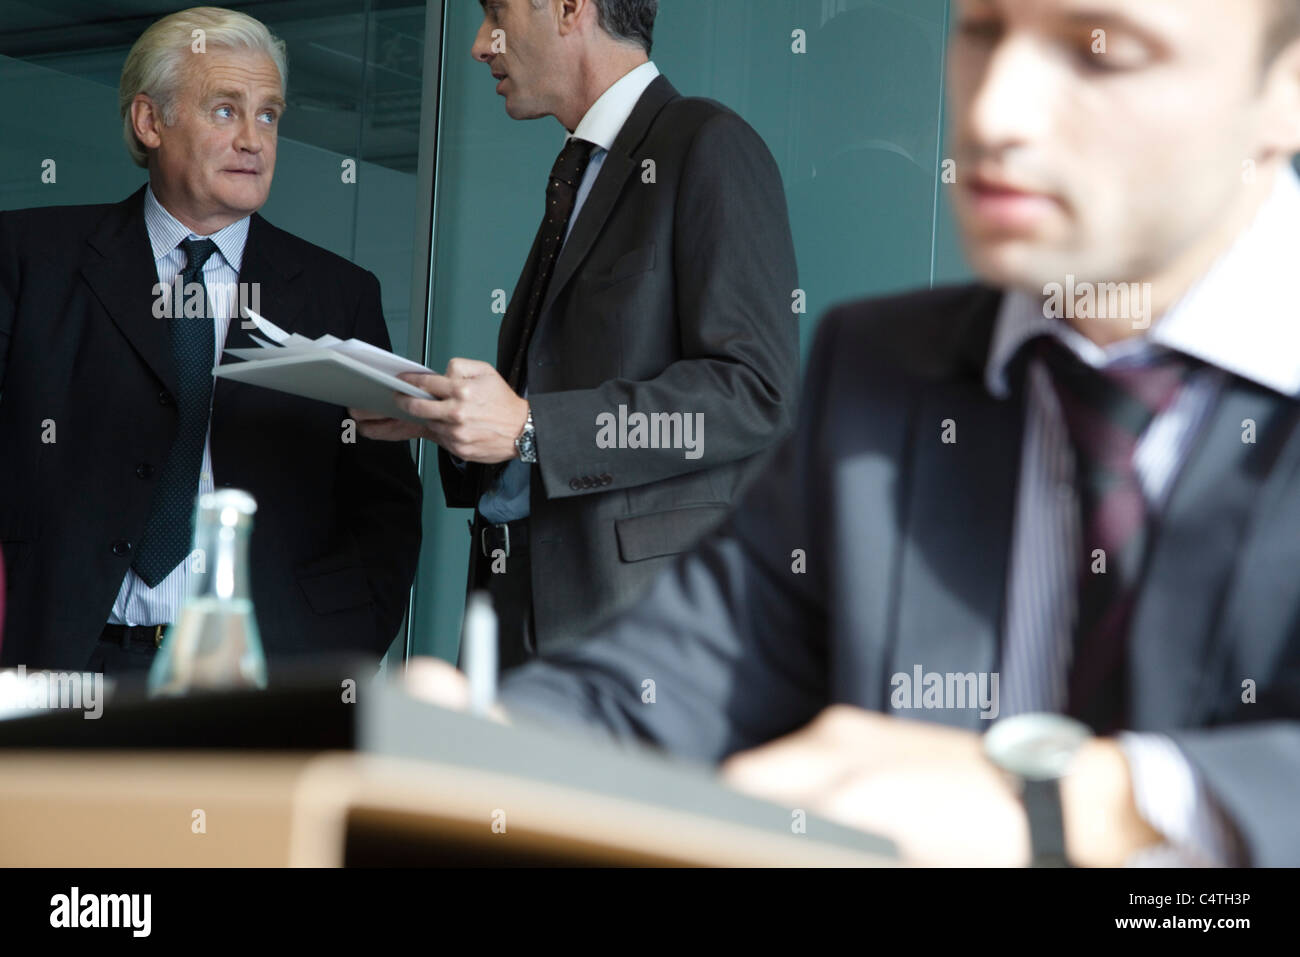 Executive in discussion, young businessman working in foreground - Stock Image